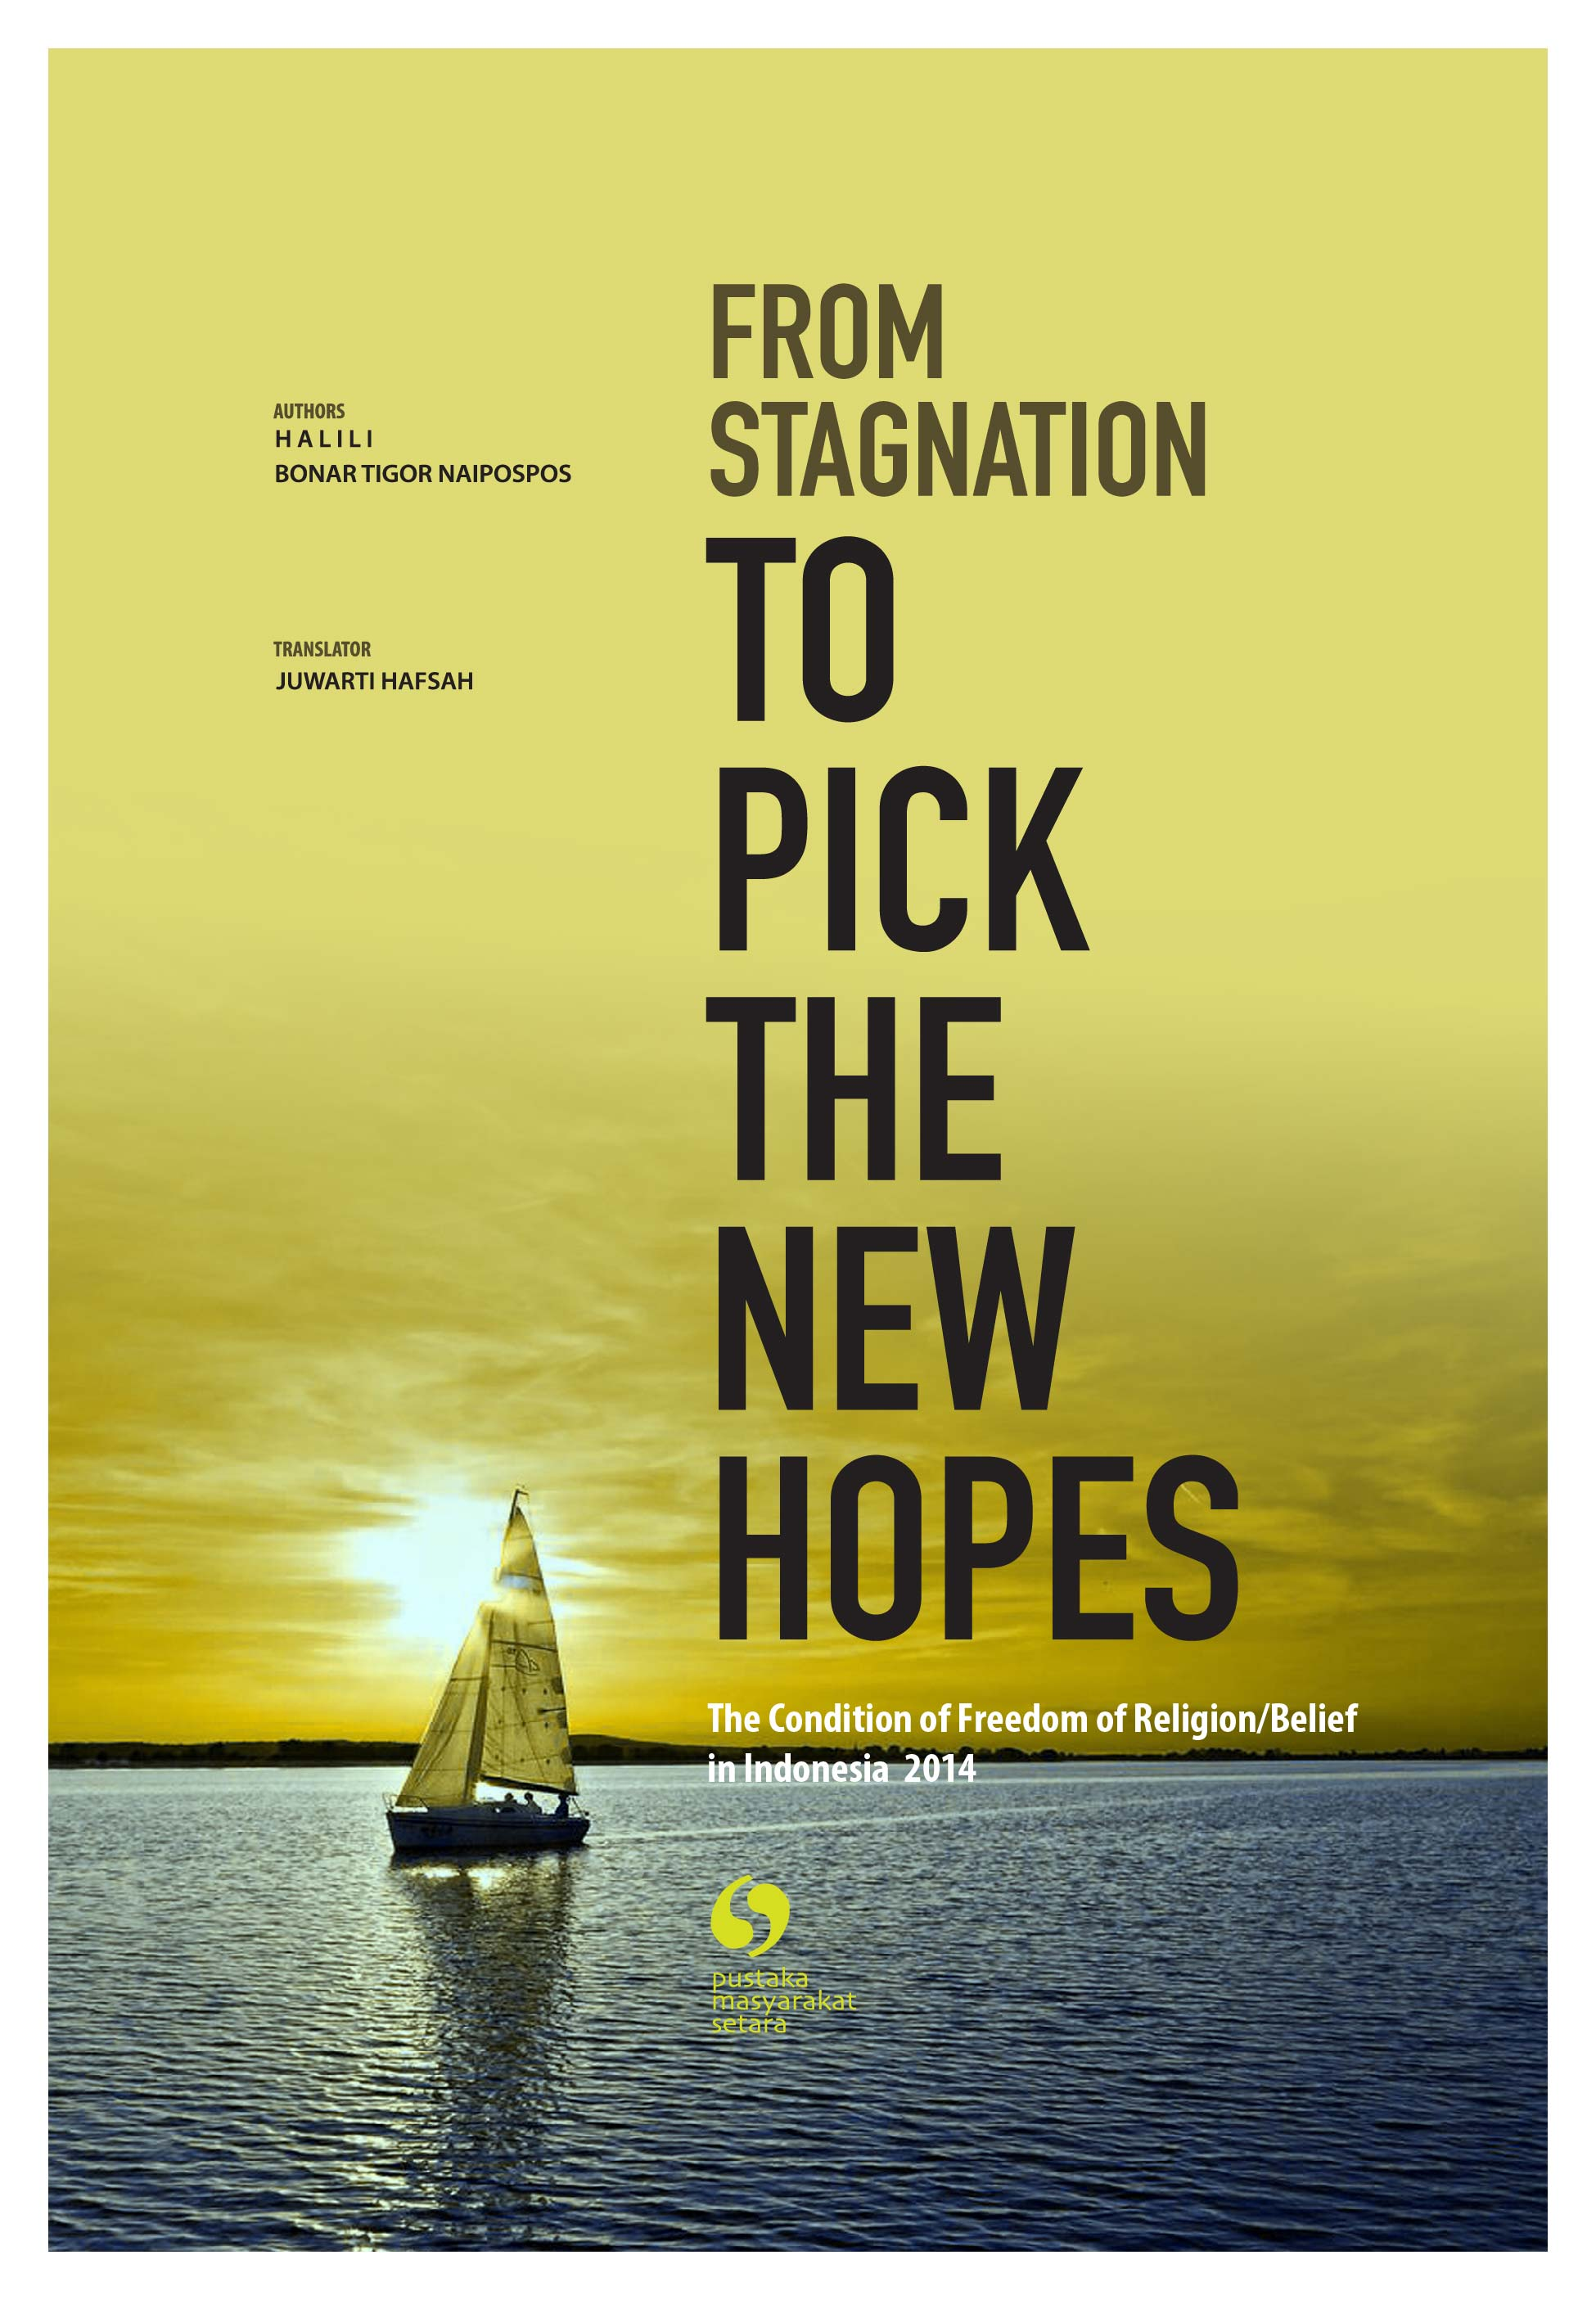 From Stagnation To Pick The New Hopes